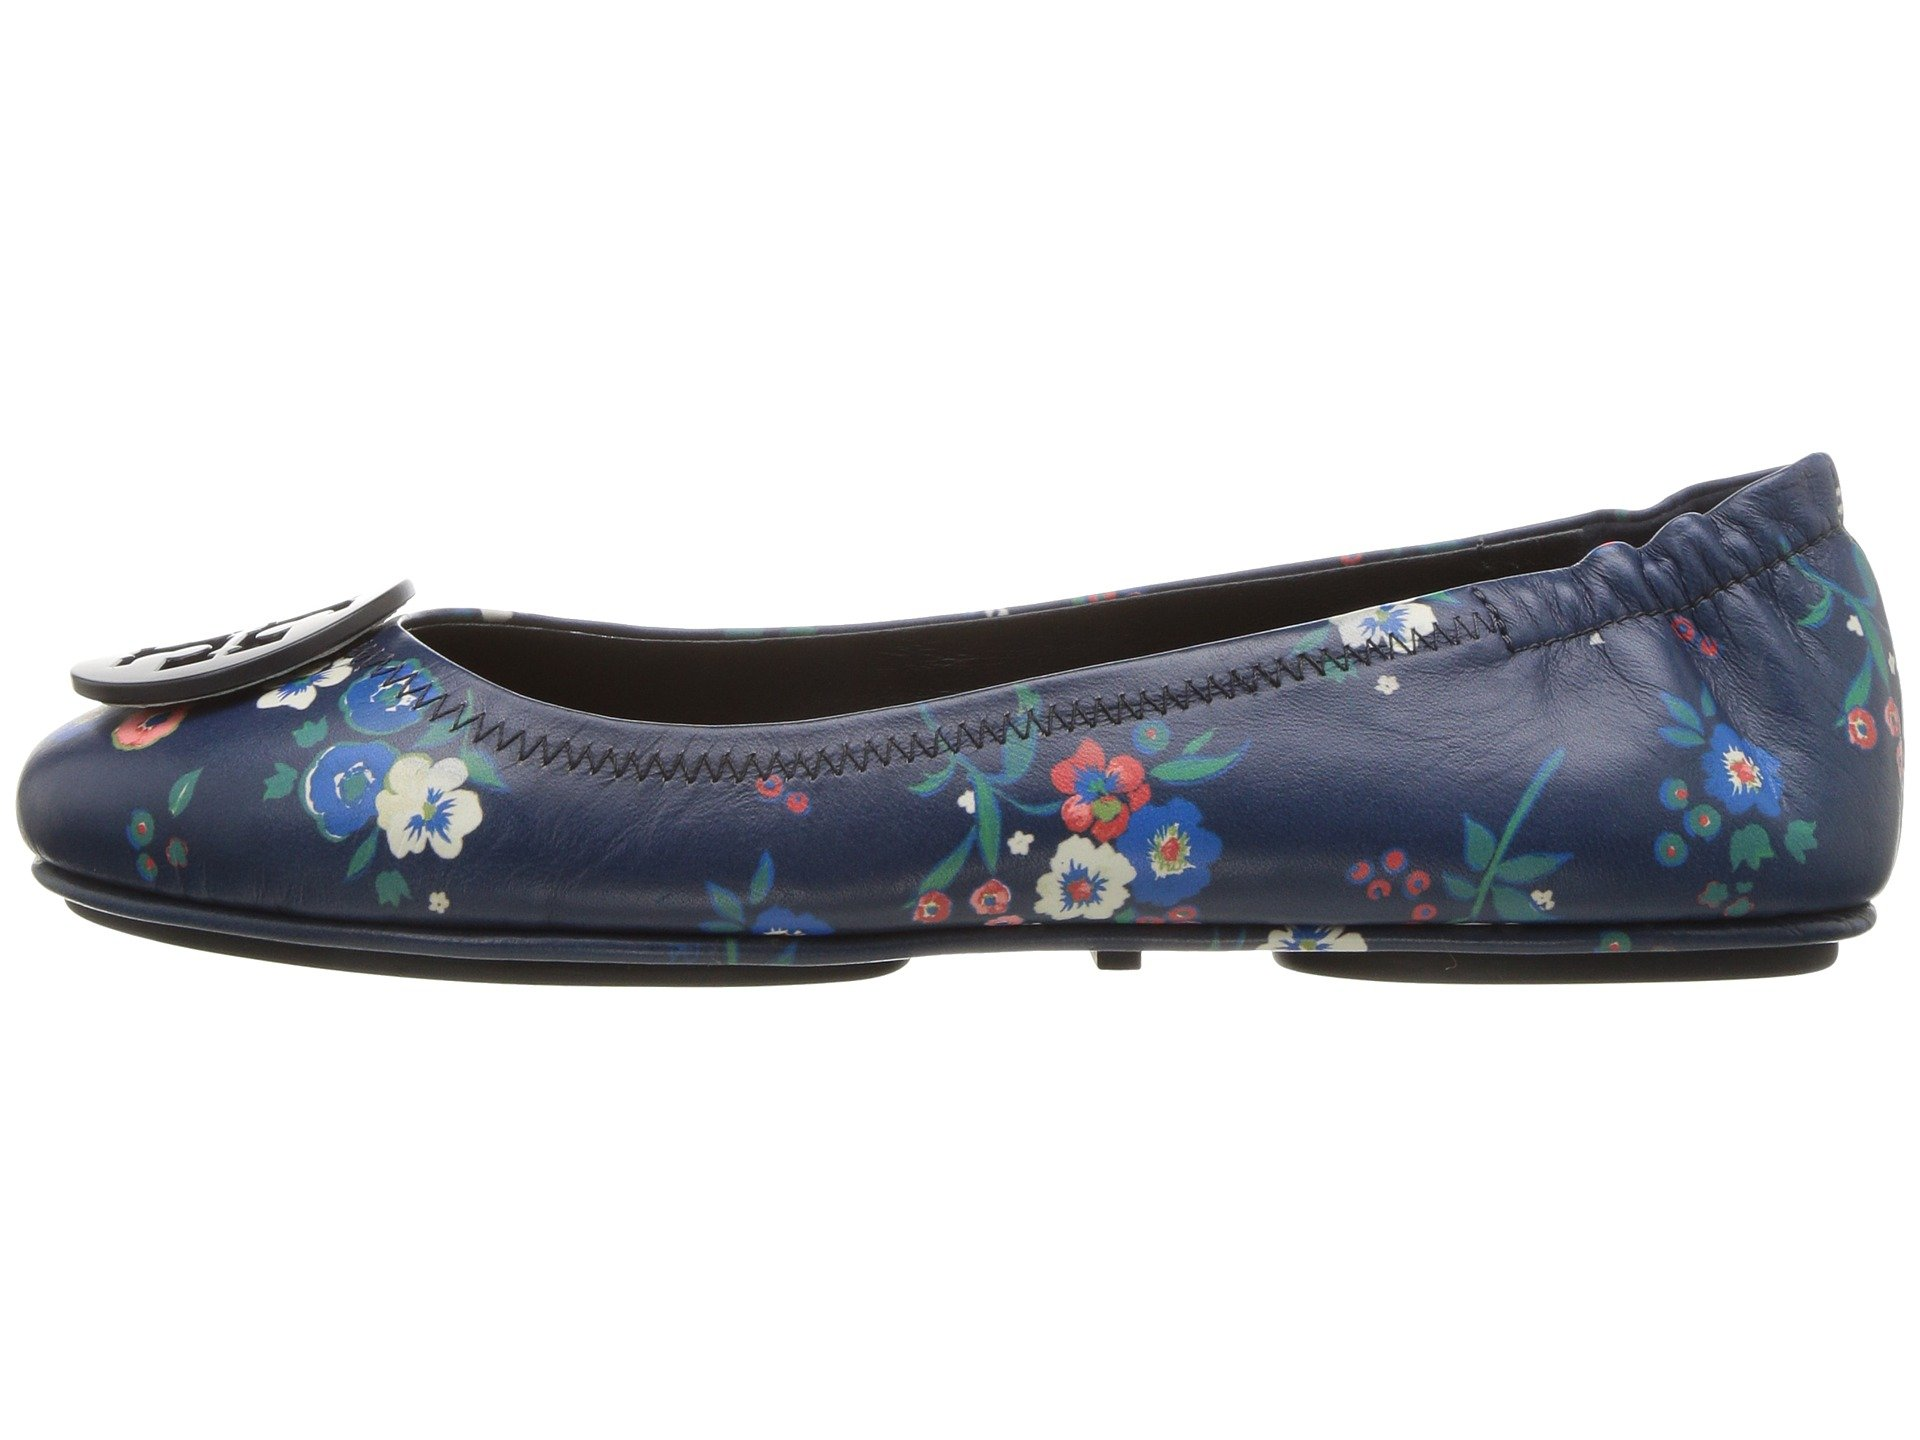 Tory Burch Minnie Travel Floral Print Lether Ballet Flat Size 8 by Tory Burch (Image #6)